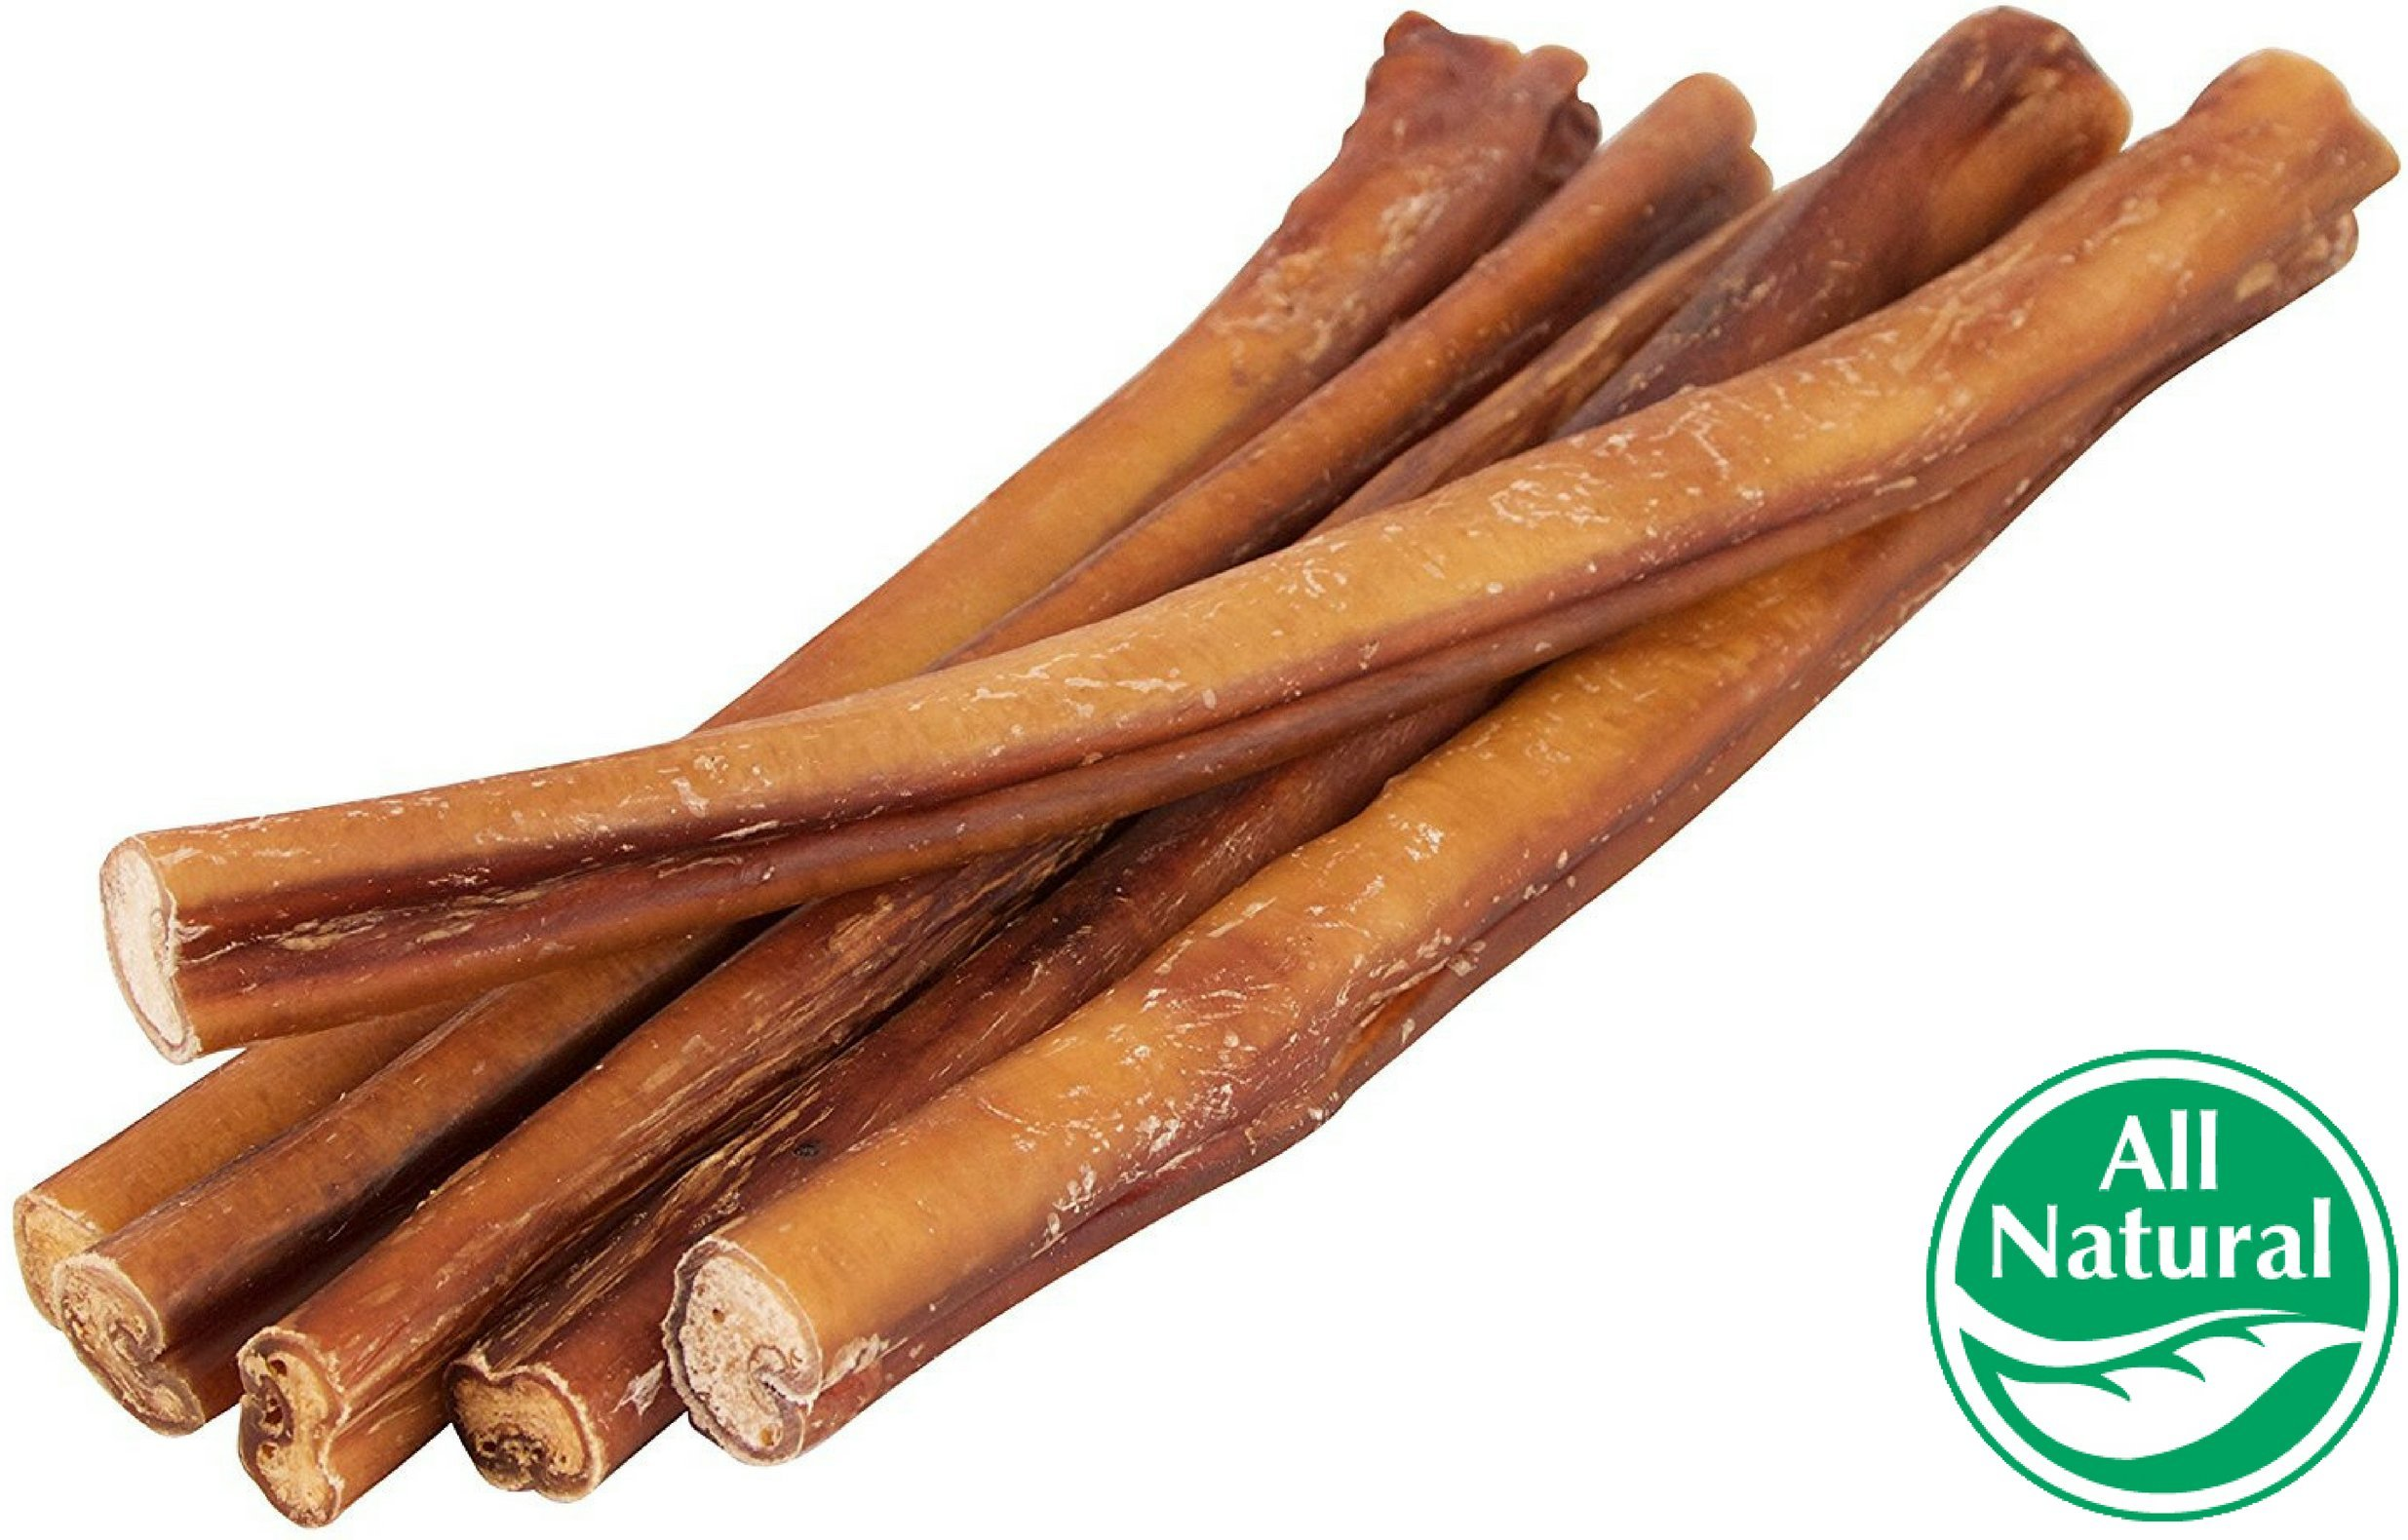 12'' Straight Bully Sticks for Dogs [Large Thickness] (100 Pack) - All Natural & Odorless Bully Bones | Long Lasting Chew Dental Treats | Best Thick Bullie Sticks for K9 or Puppies | Grass-Fed Beef